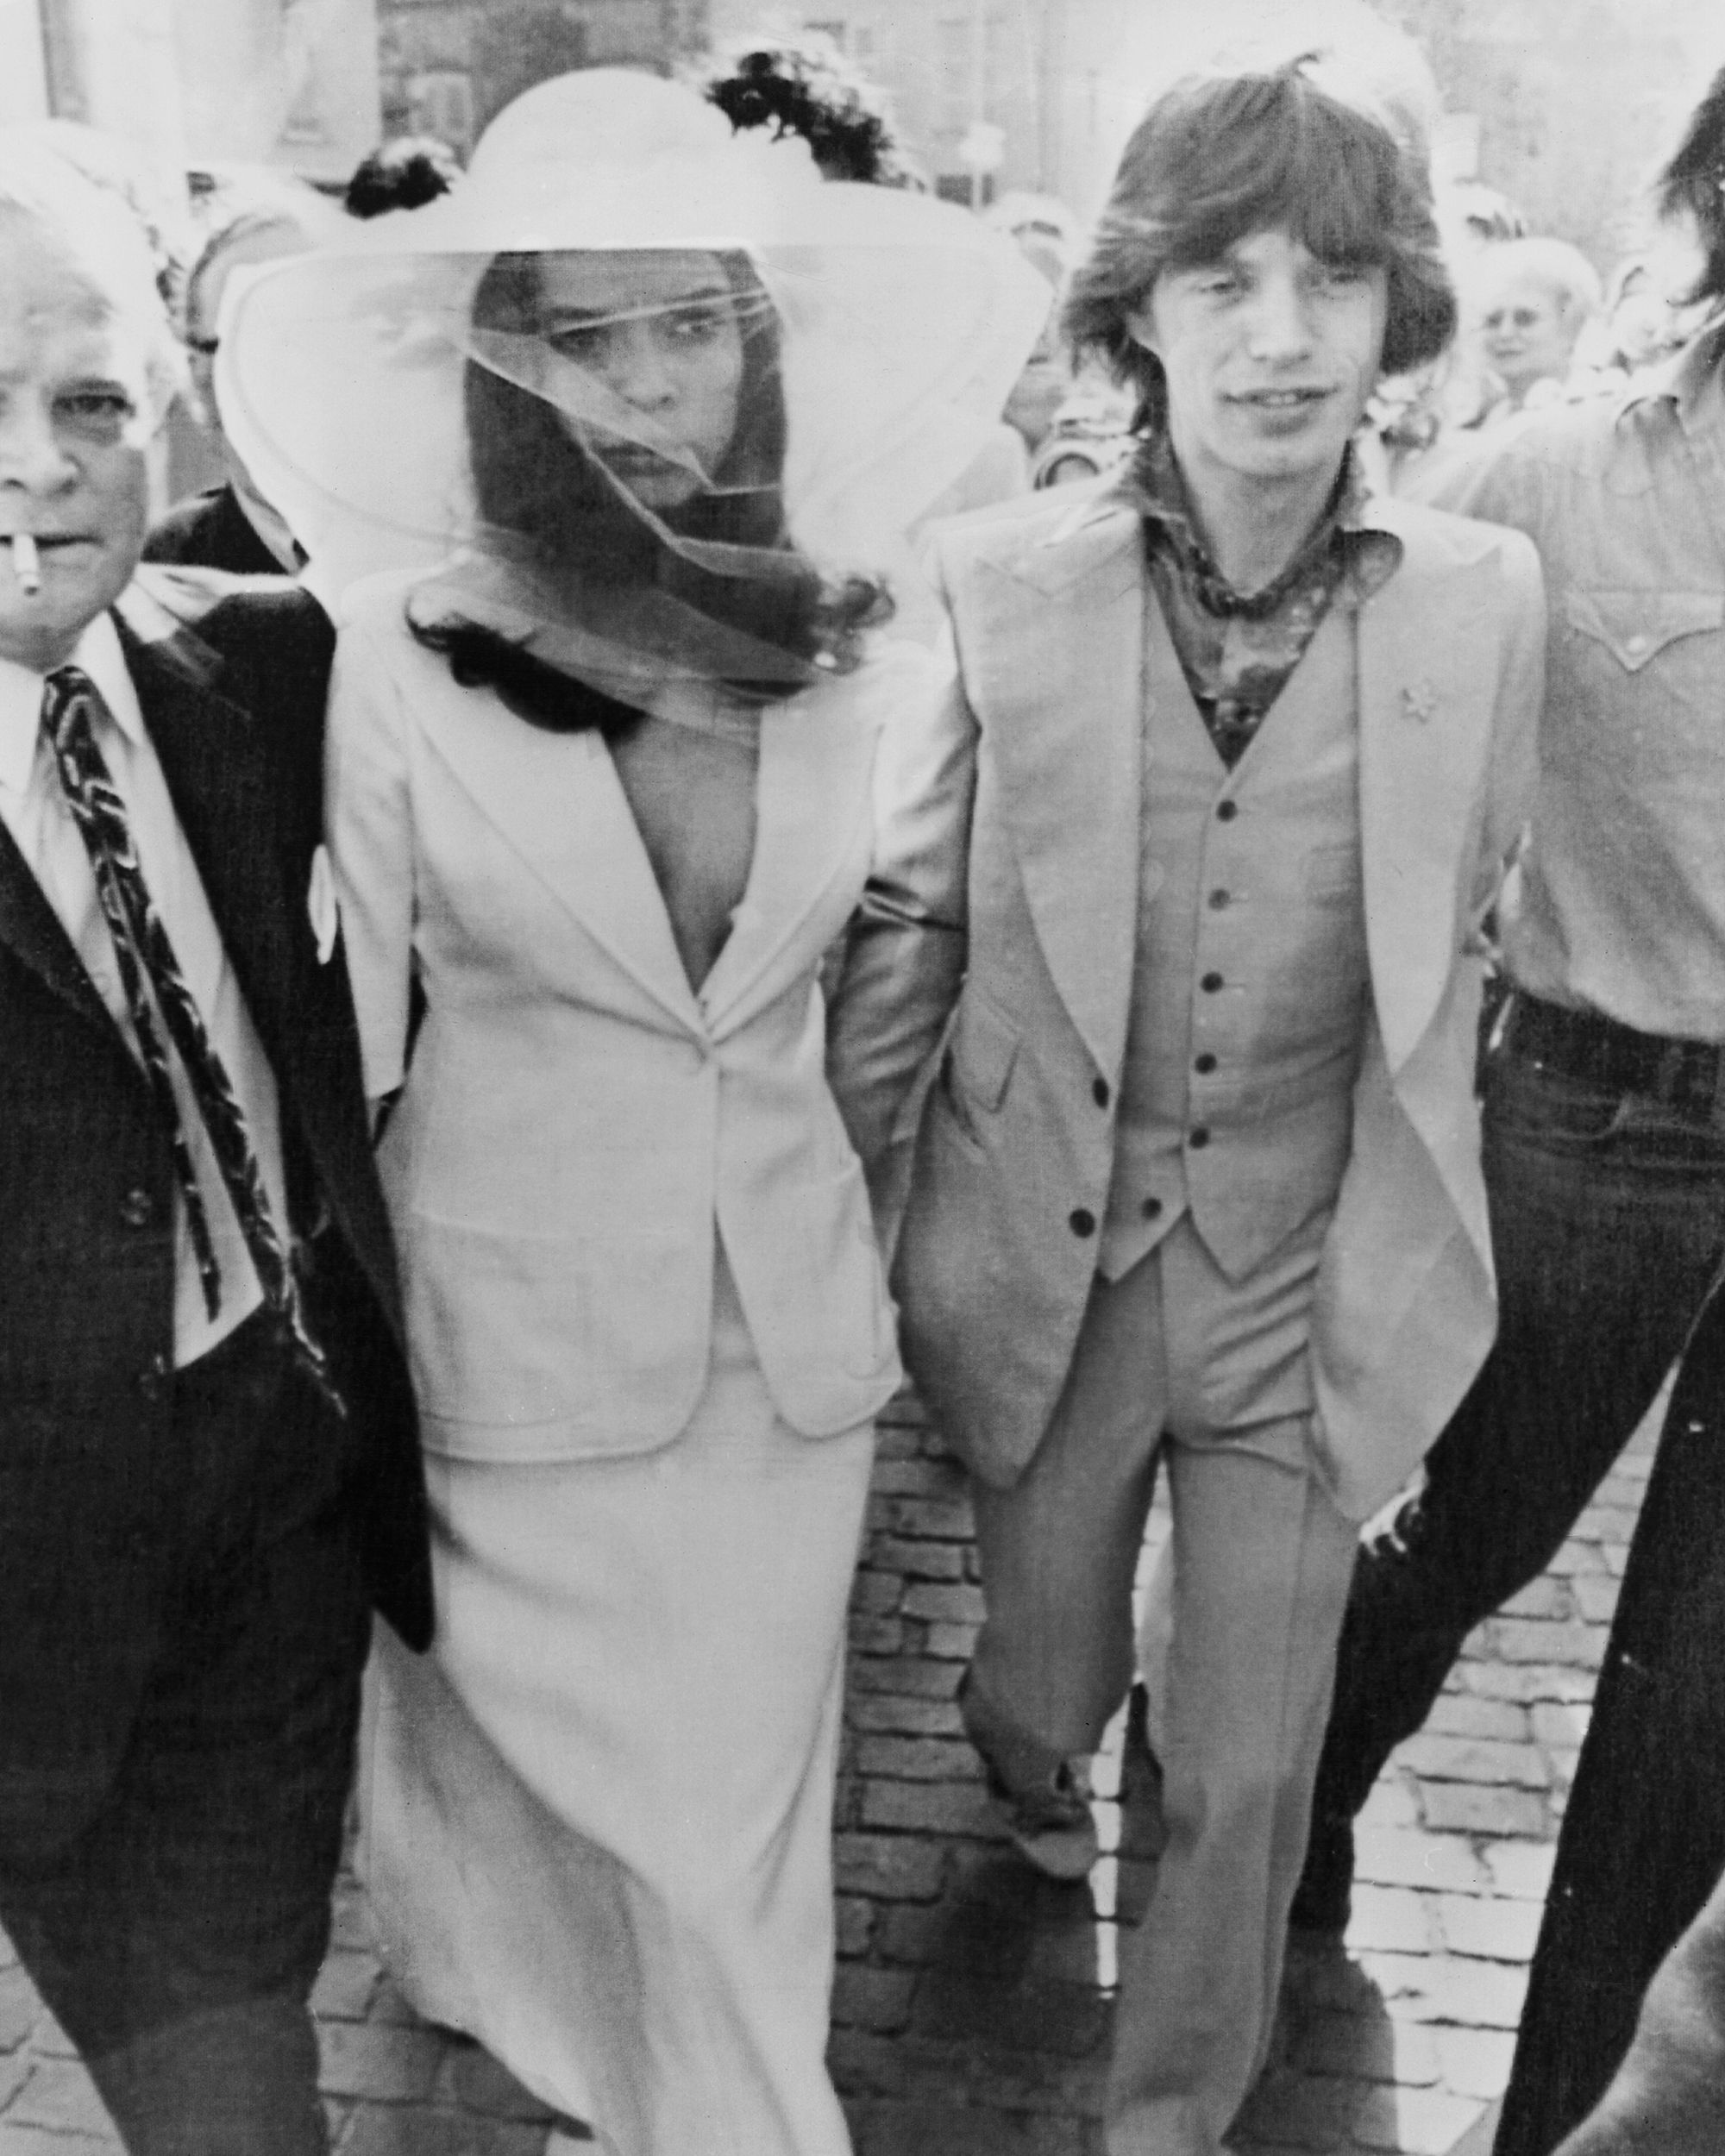 13th May 1971, British rock singer Mick Jagger and his new wife Bianca Jagger outside St Tropez Town Hall on their wedding day. (Photo by Express/Getty Images)